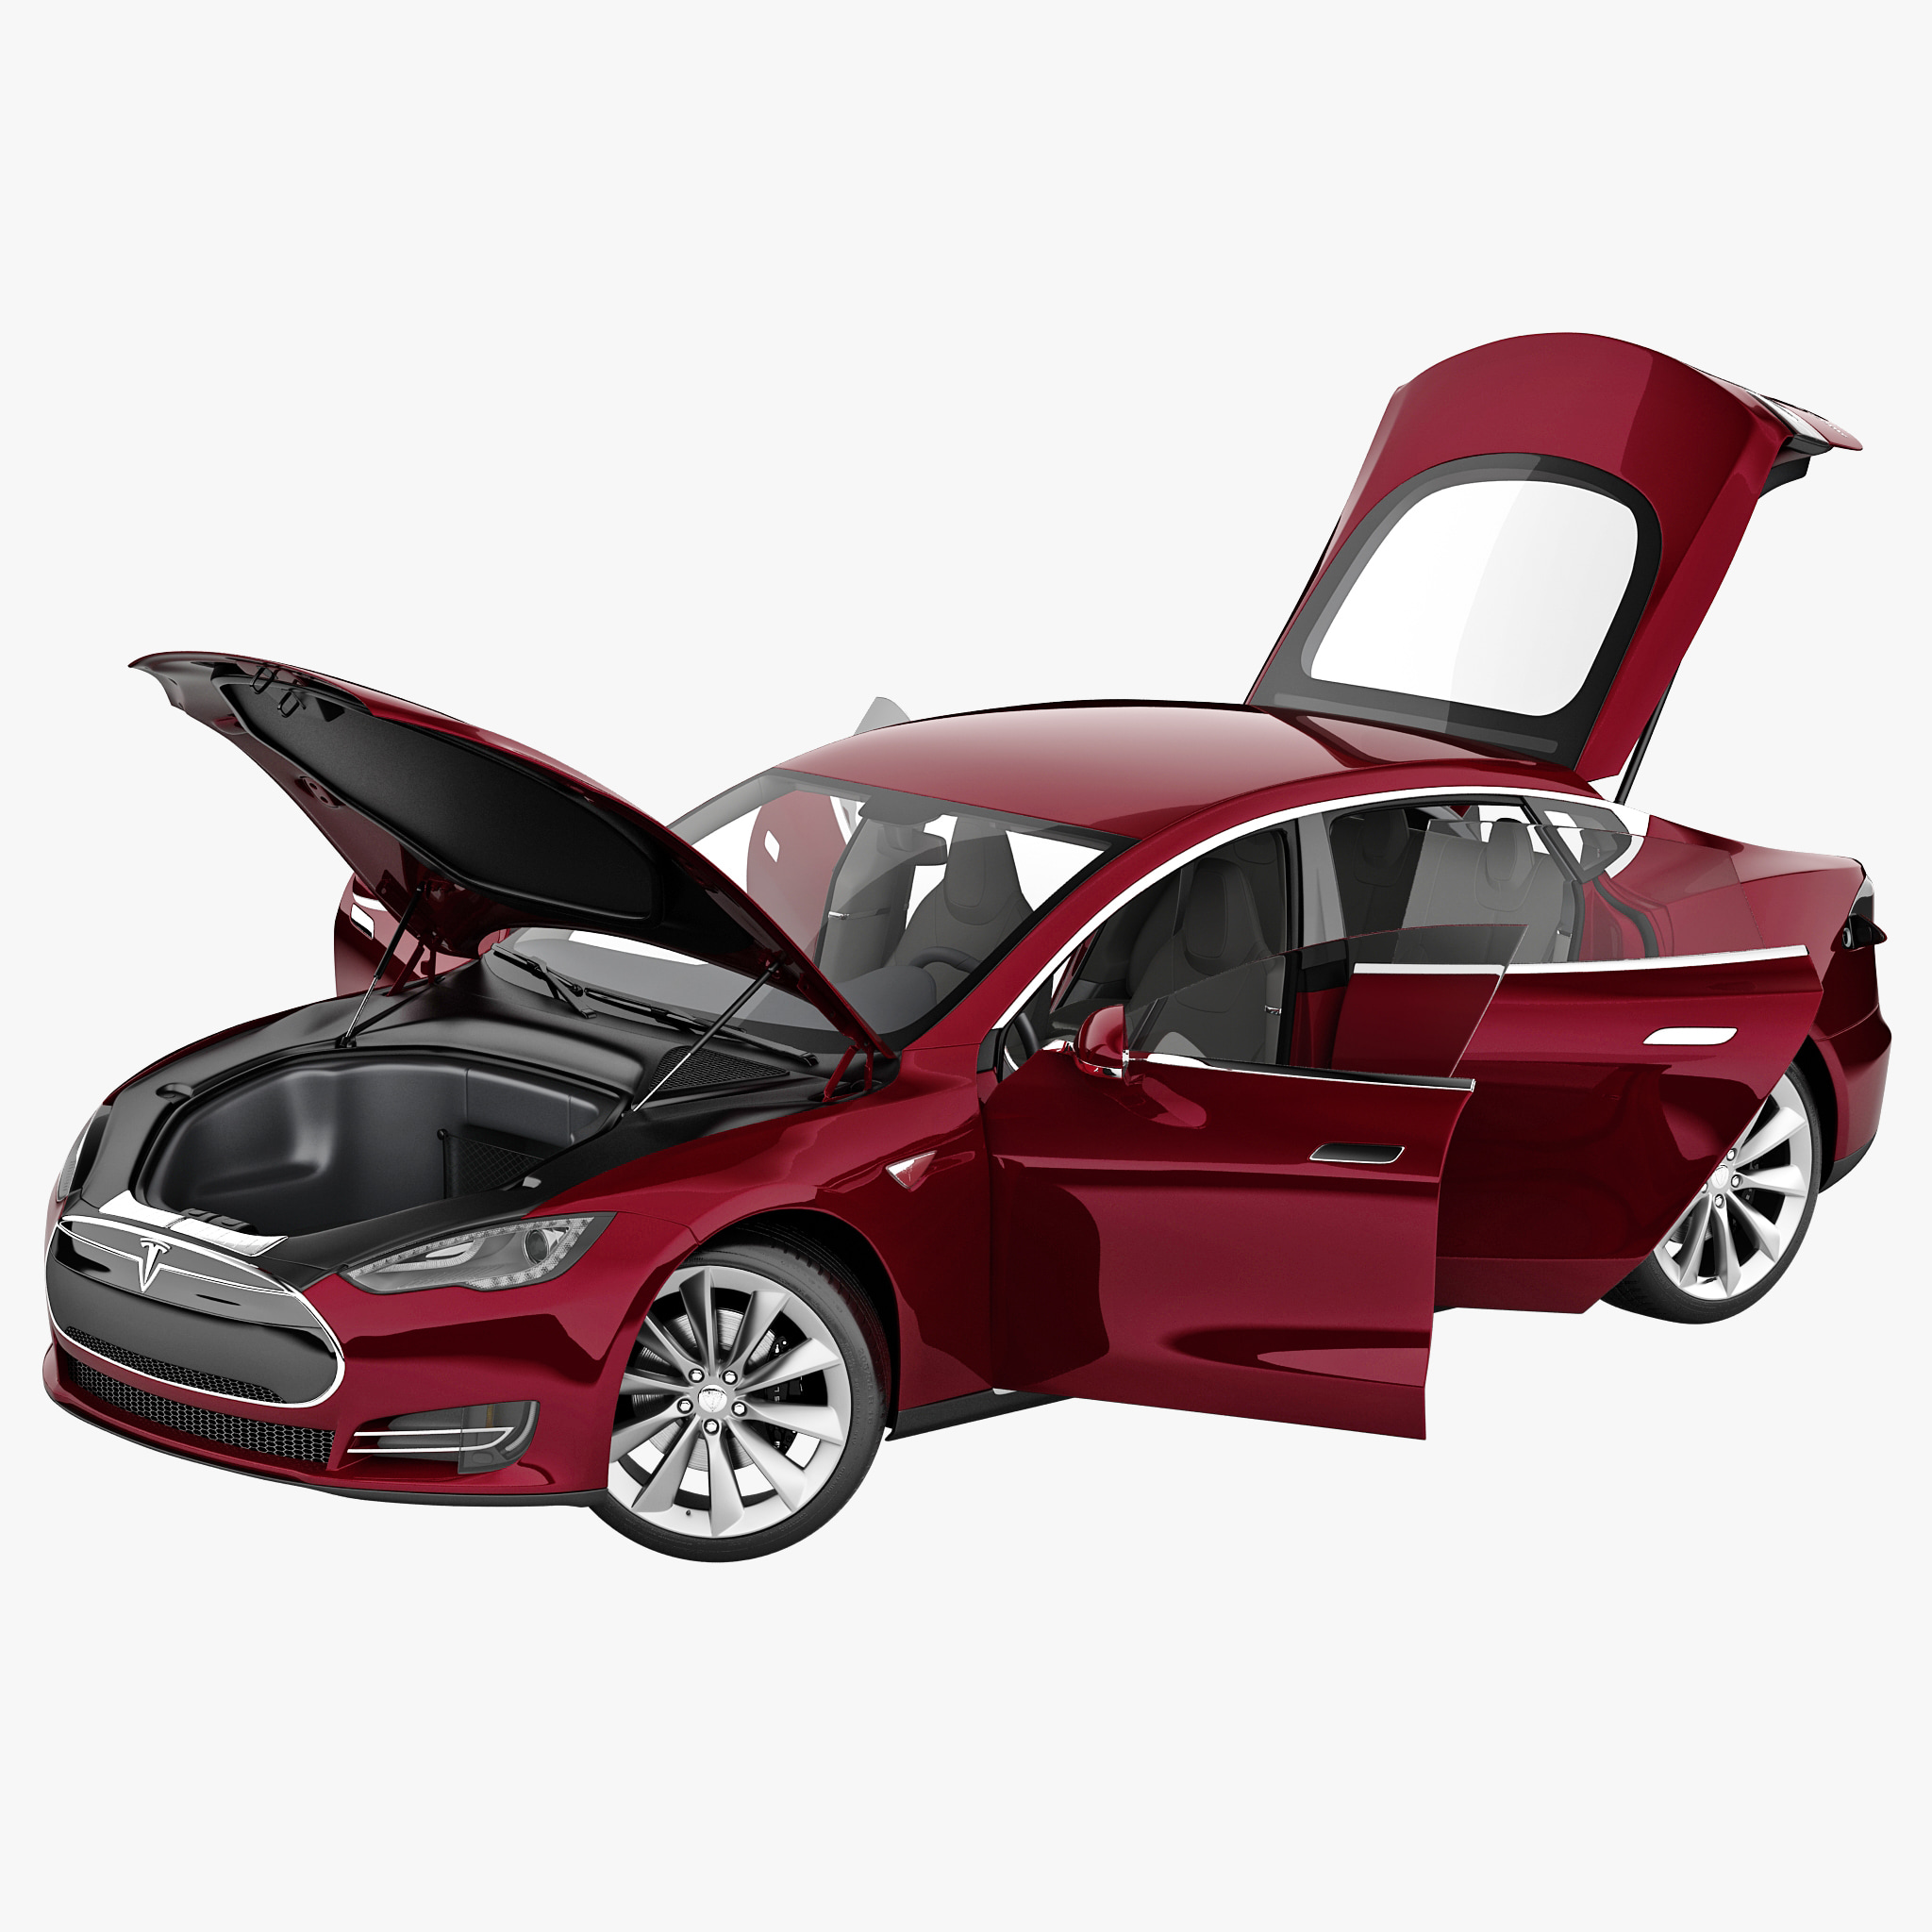 Tesla Model S 2014 Rigged_30.jpg